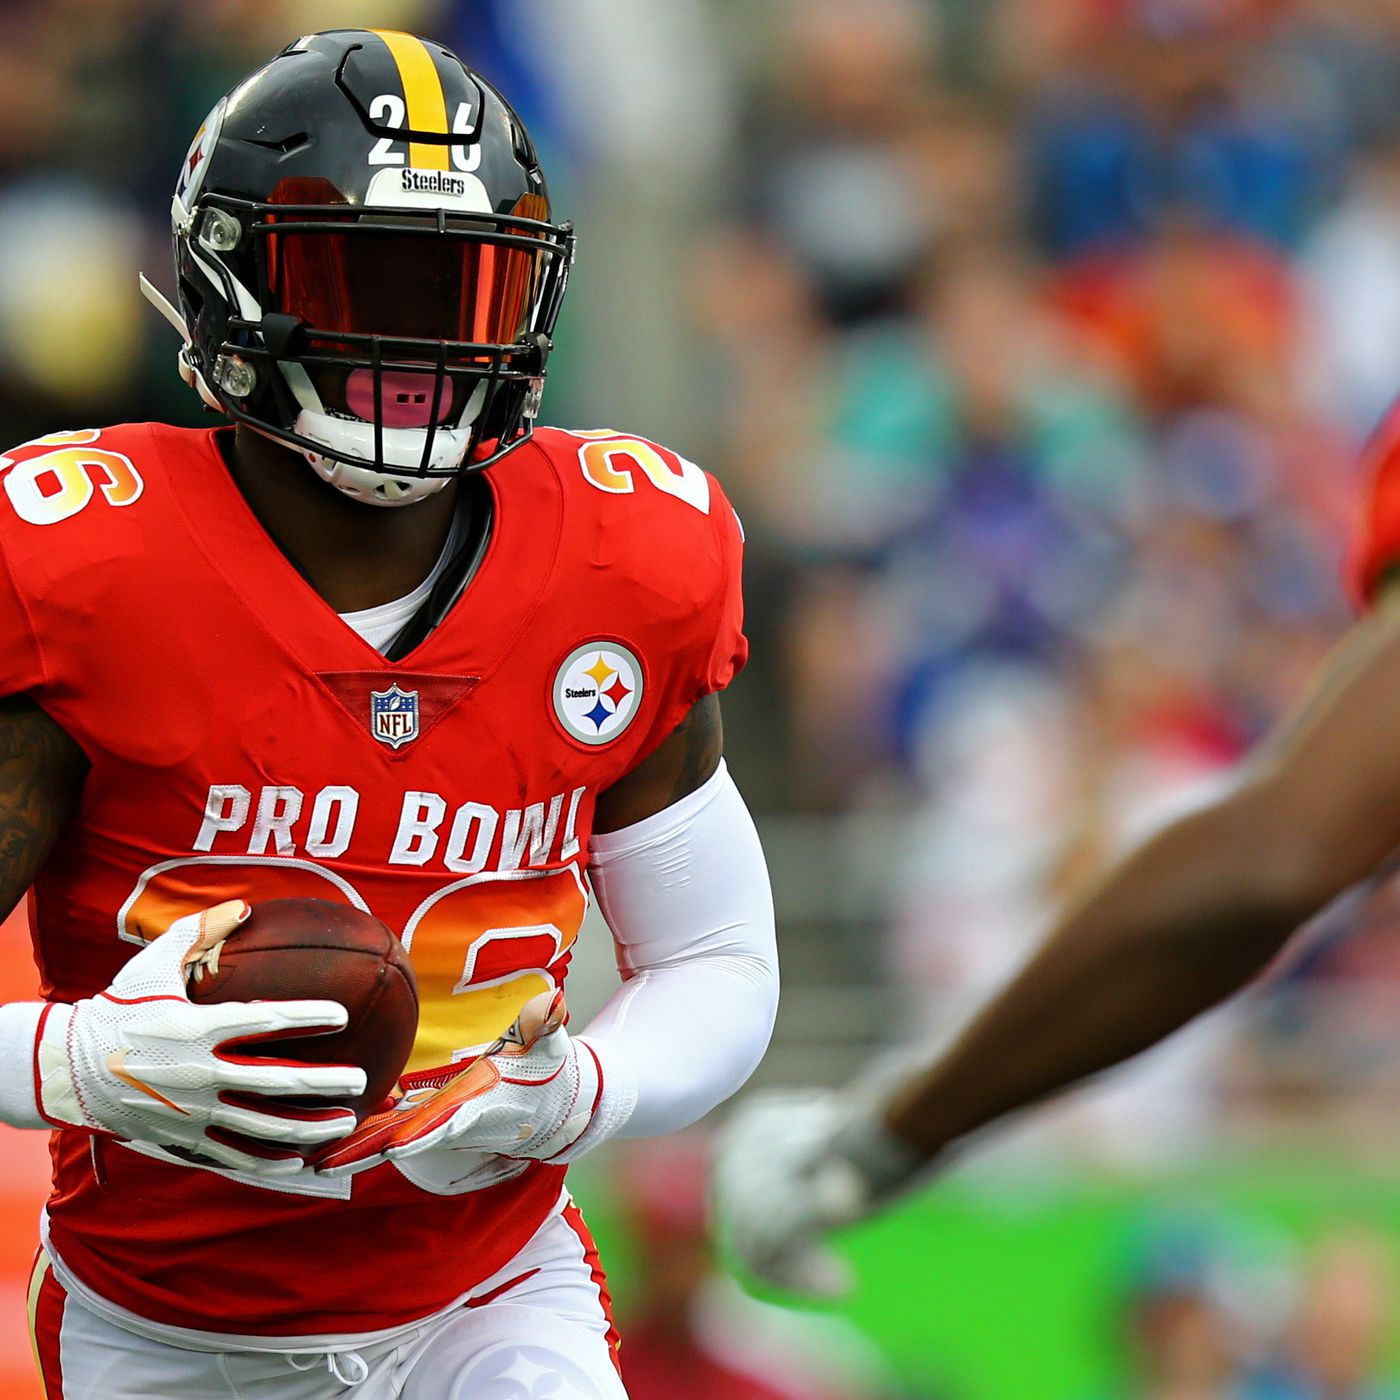 Breaking: Le'Veon Bell reportedly signing with New York Jets